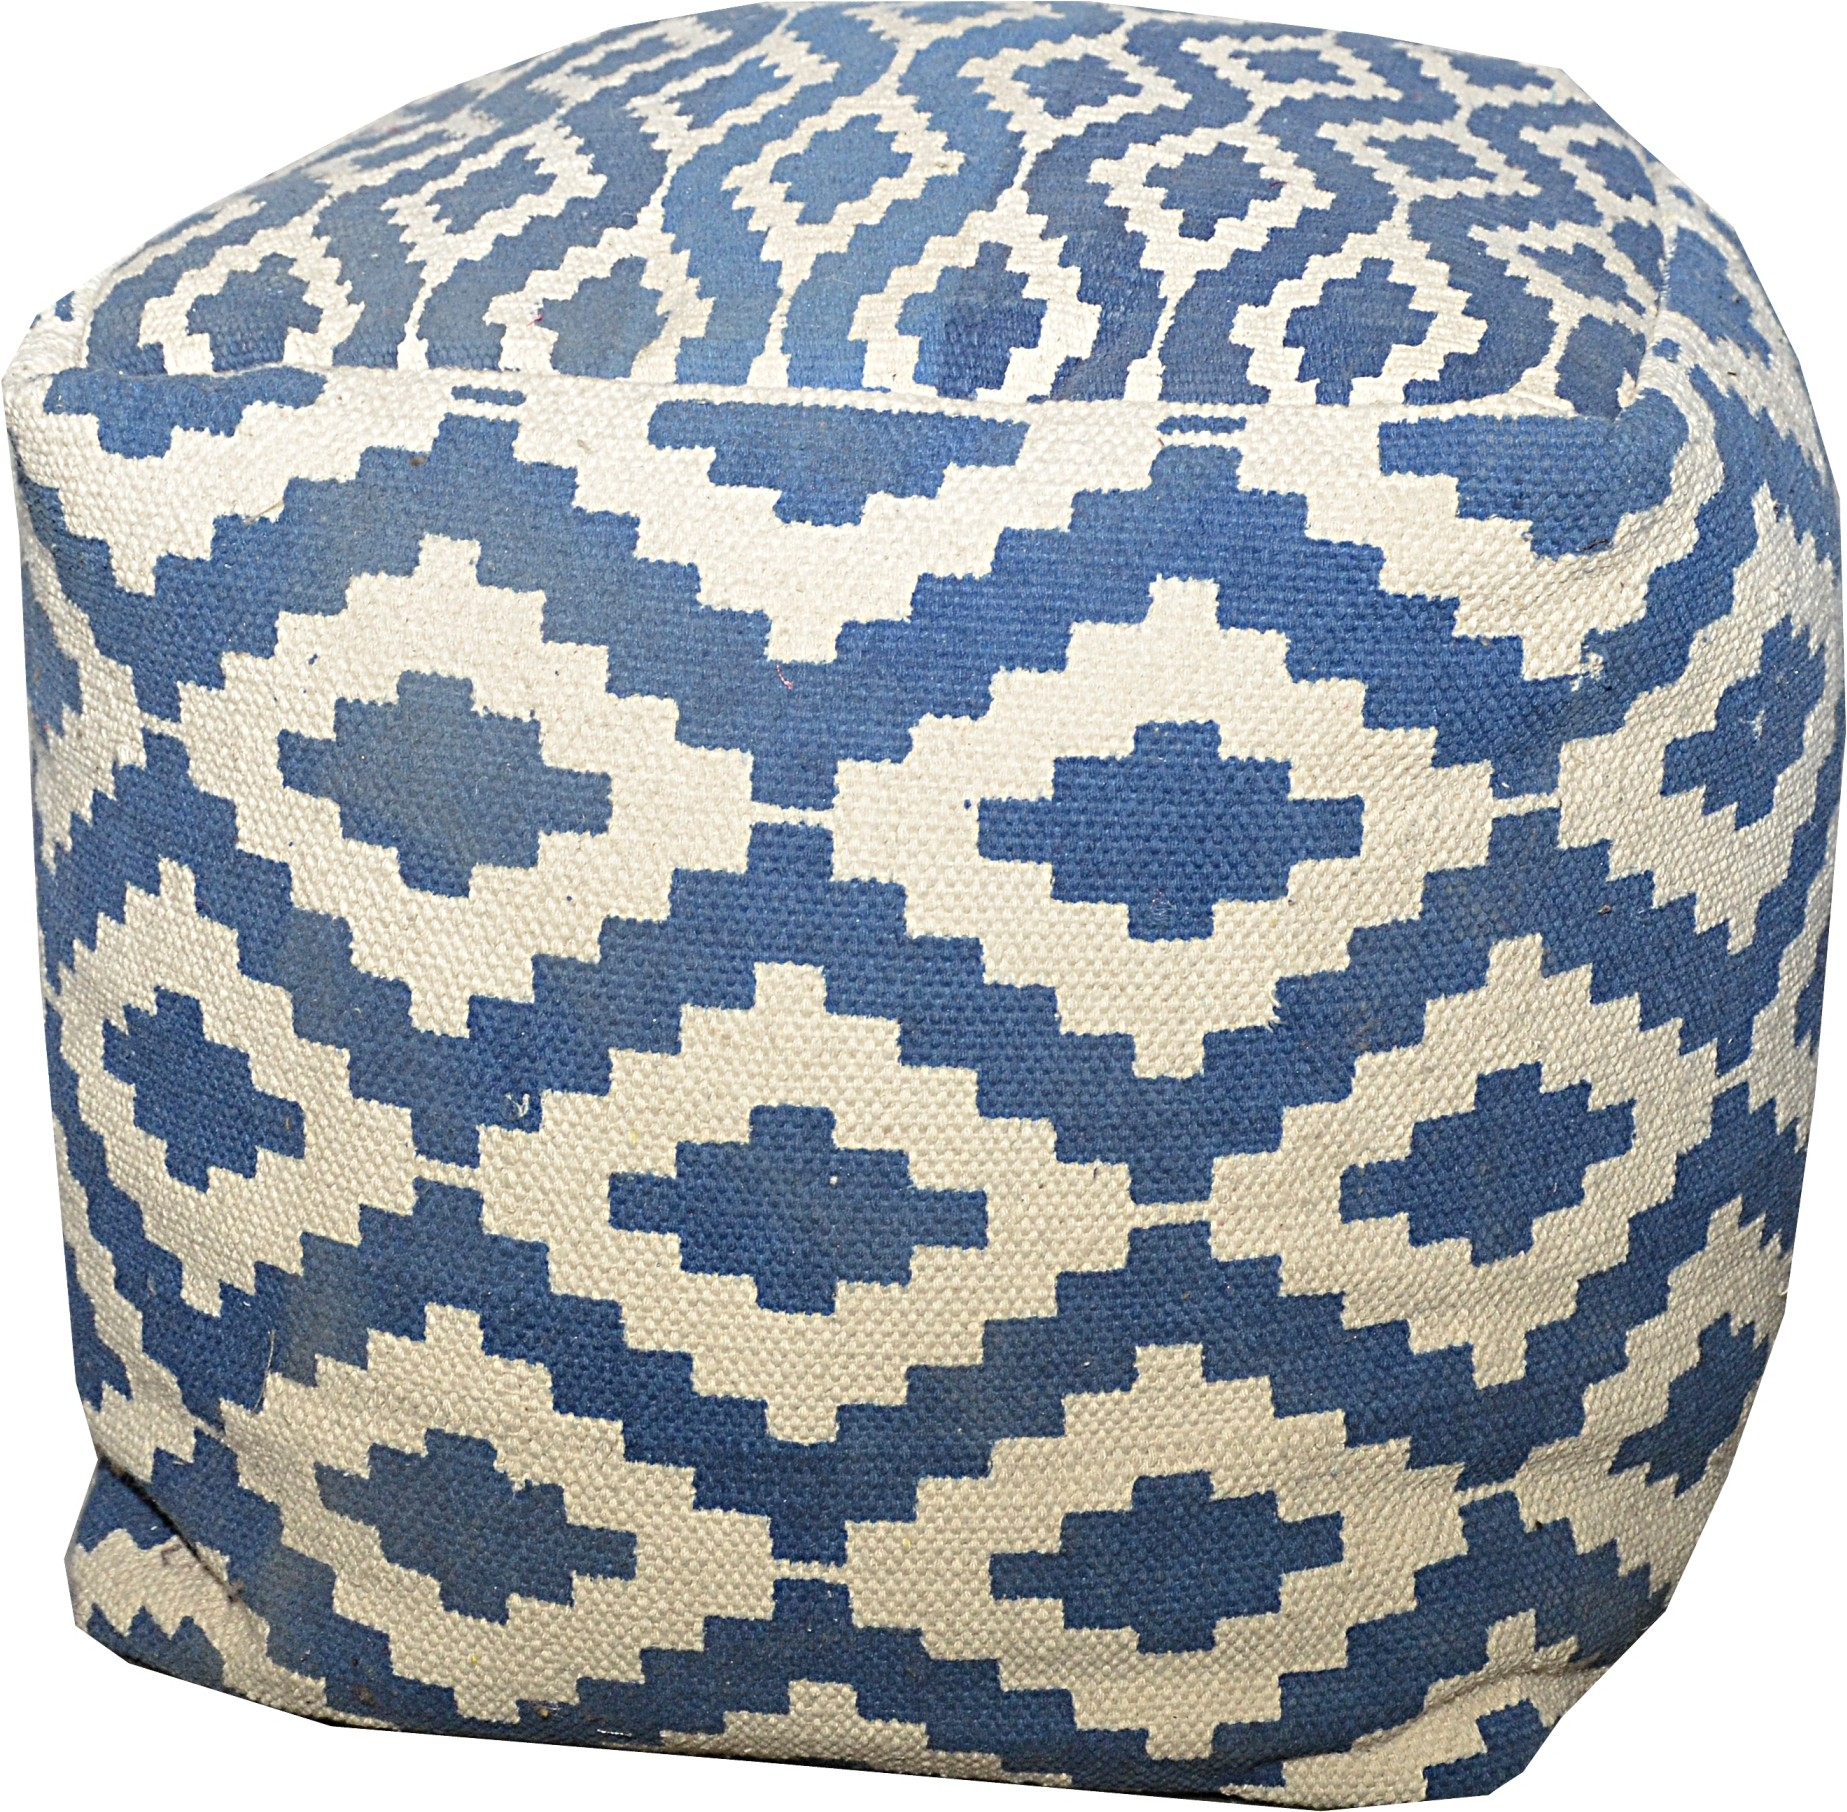 View JJ Craft Natural Fiber Standard Ottoman(Finish Color - blue) Furniture (JJ Craft)